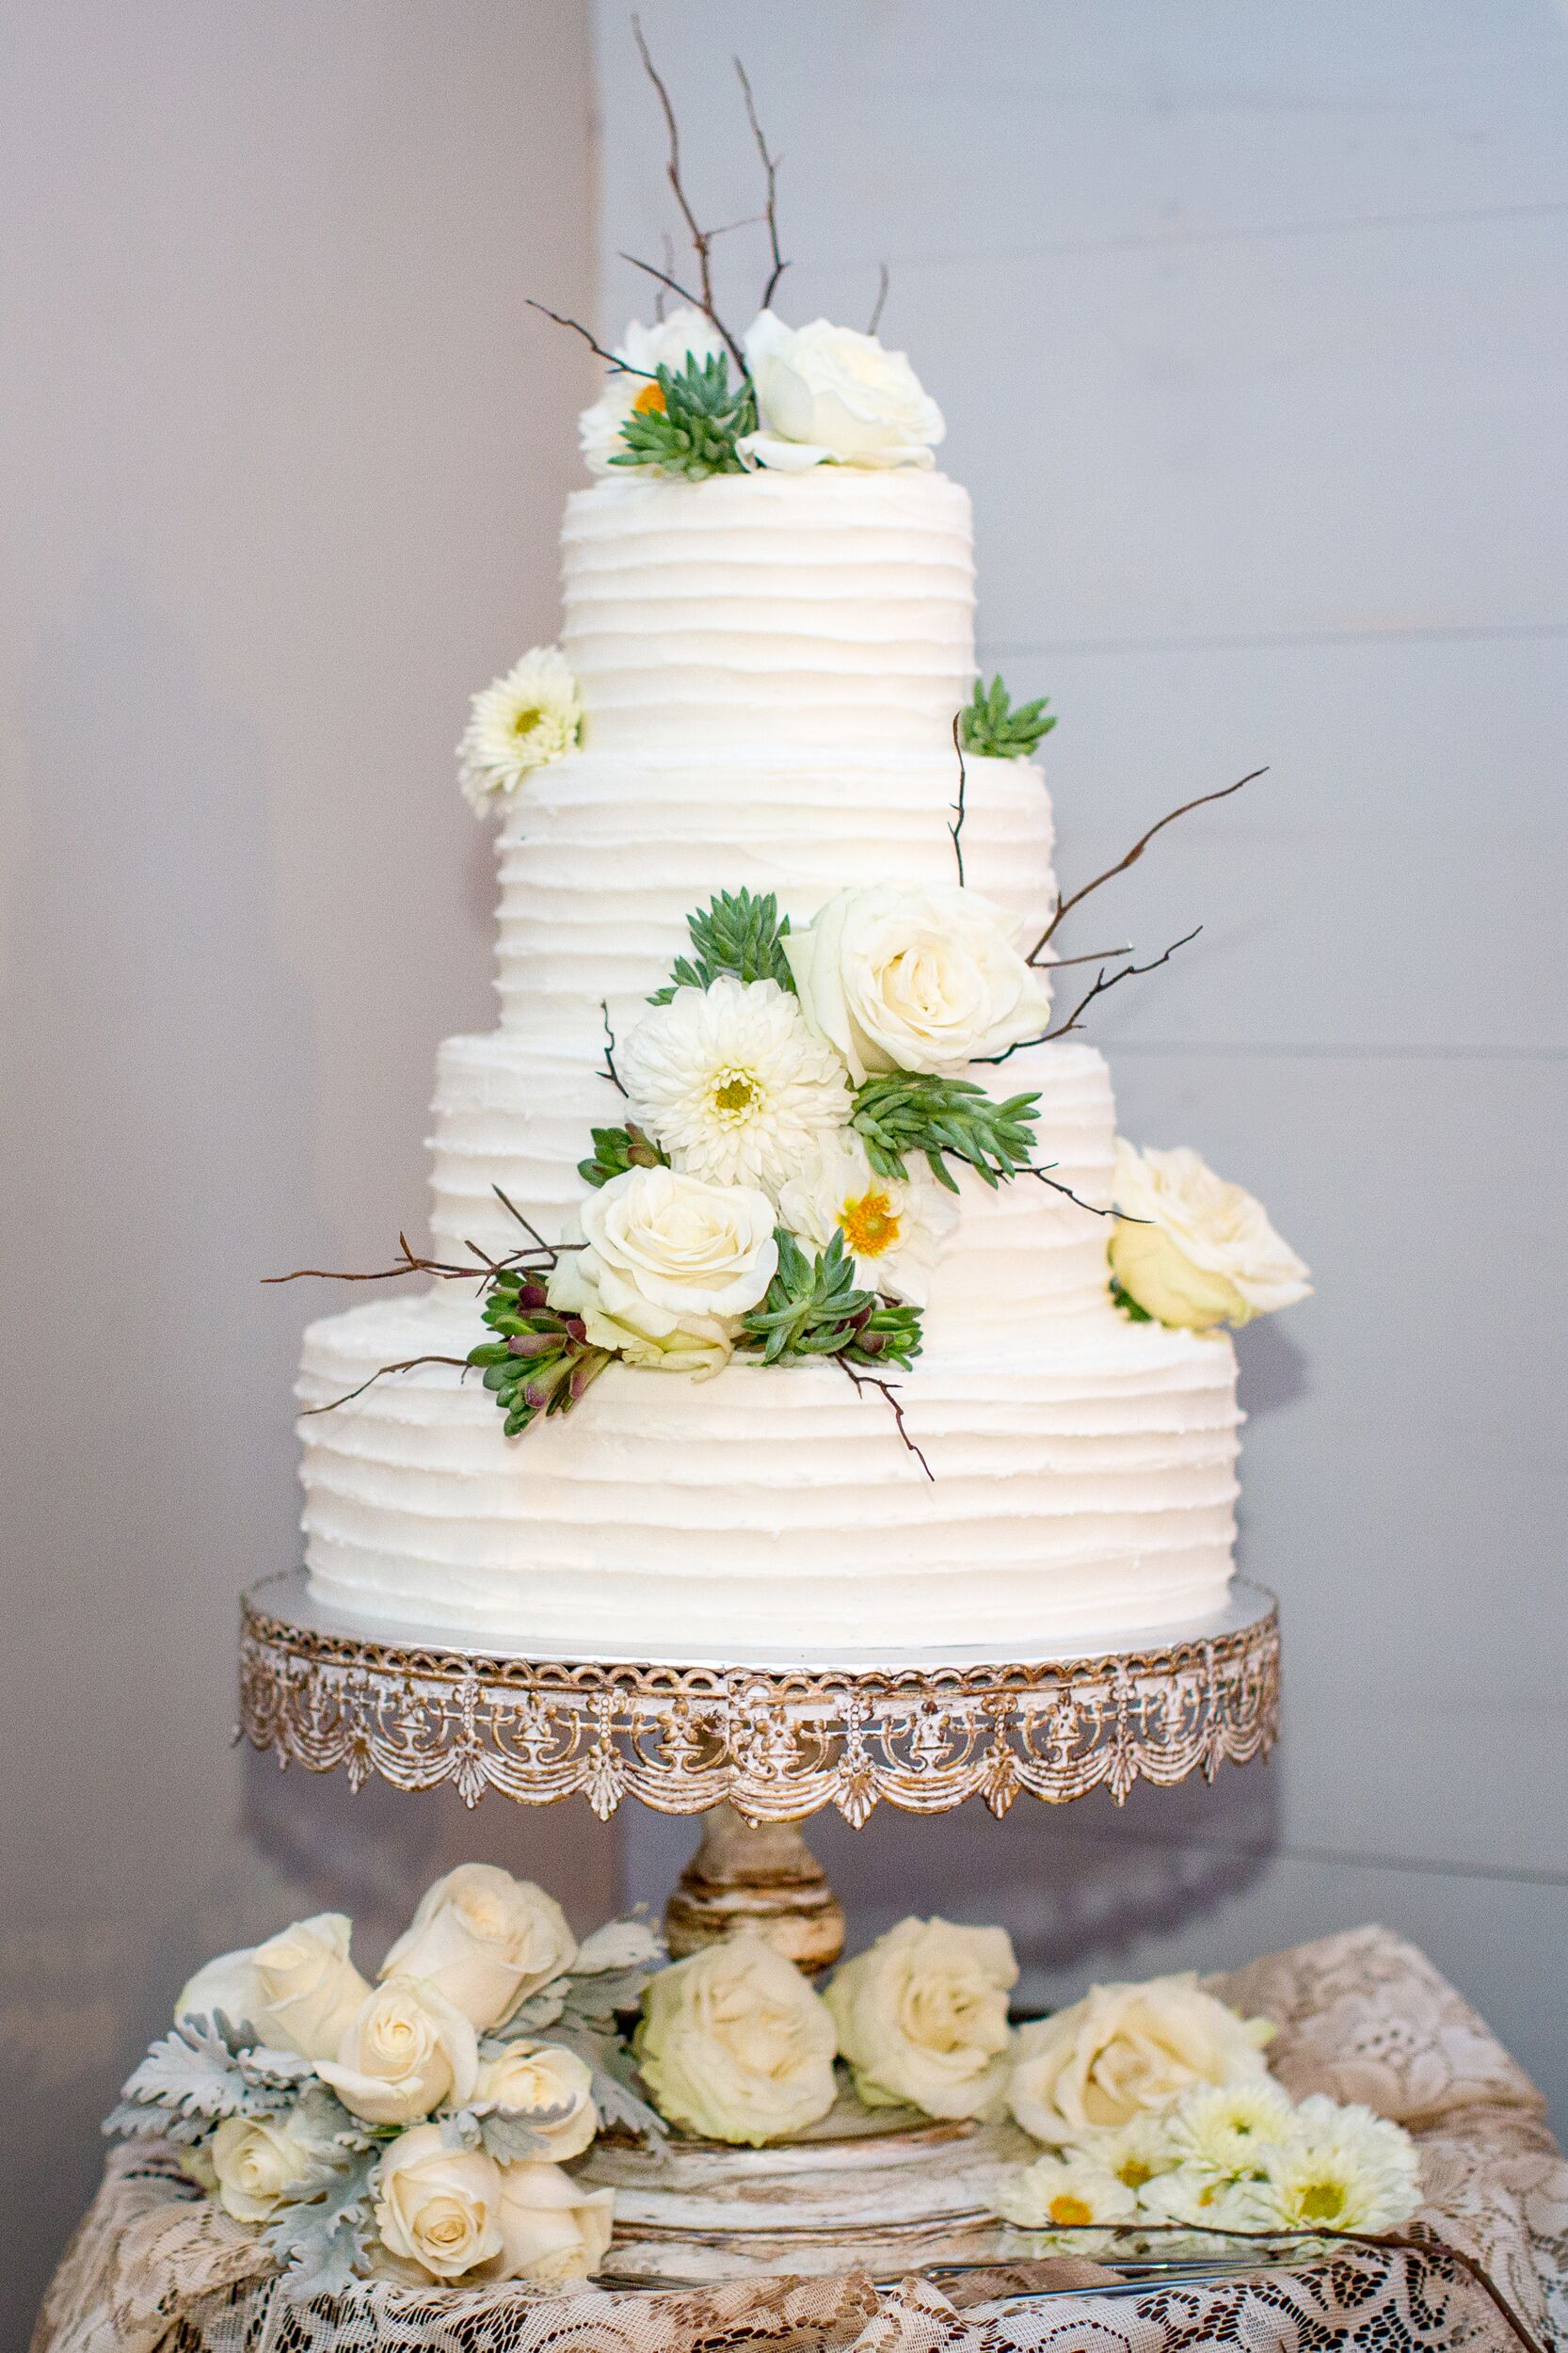 Ivory Wedding Cake With Roses And Daisies